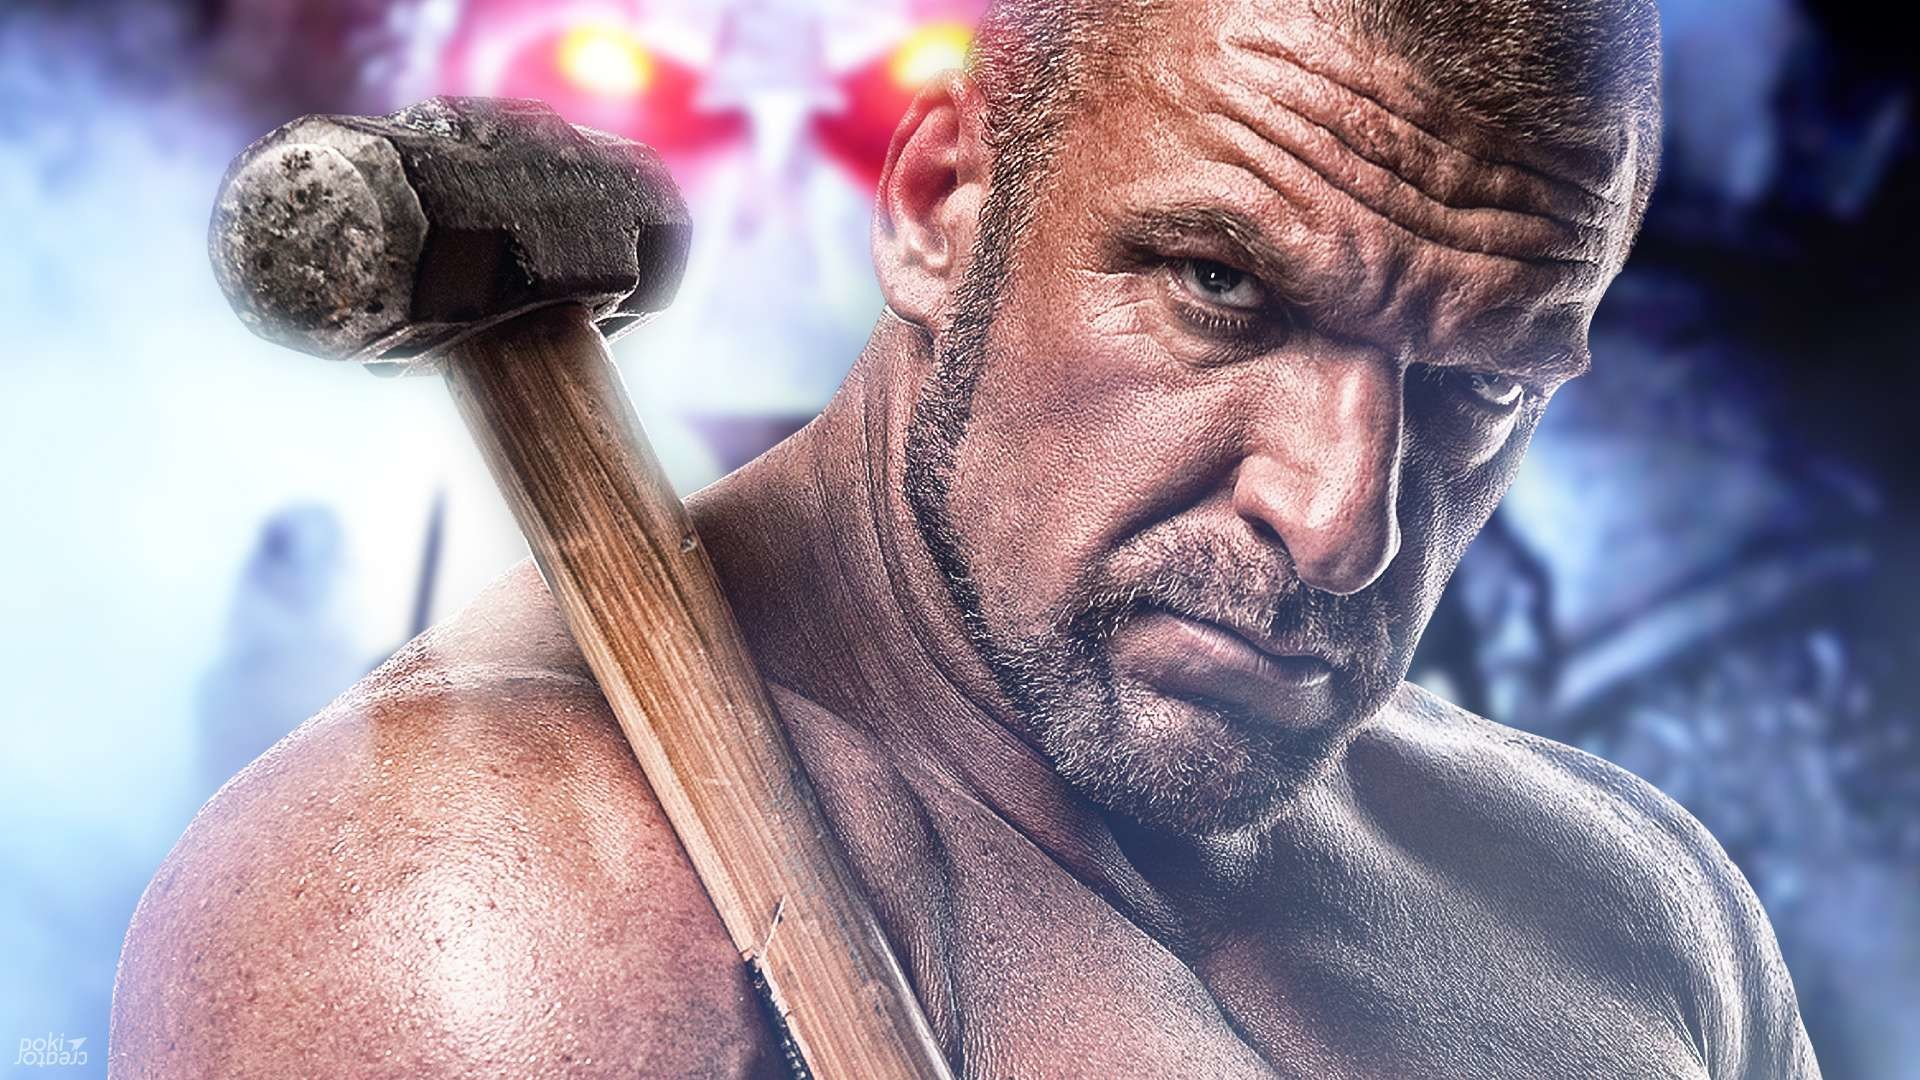 Triple H Wallpapers 2018 49 Images